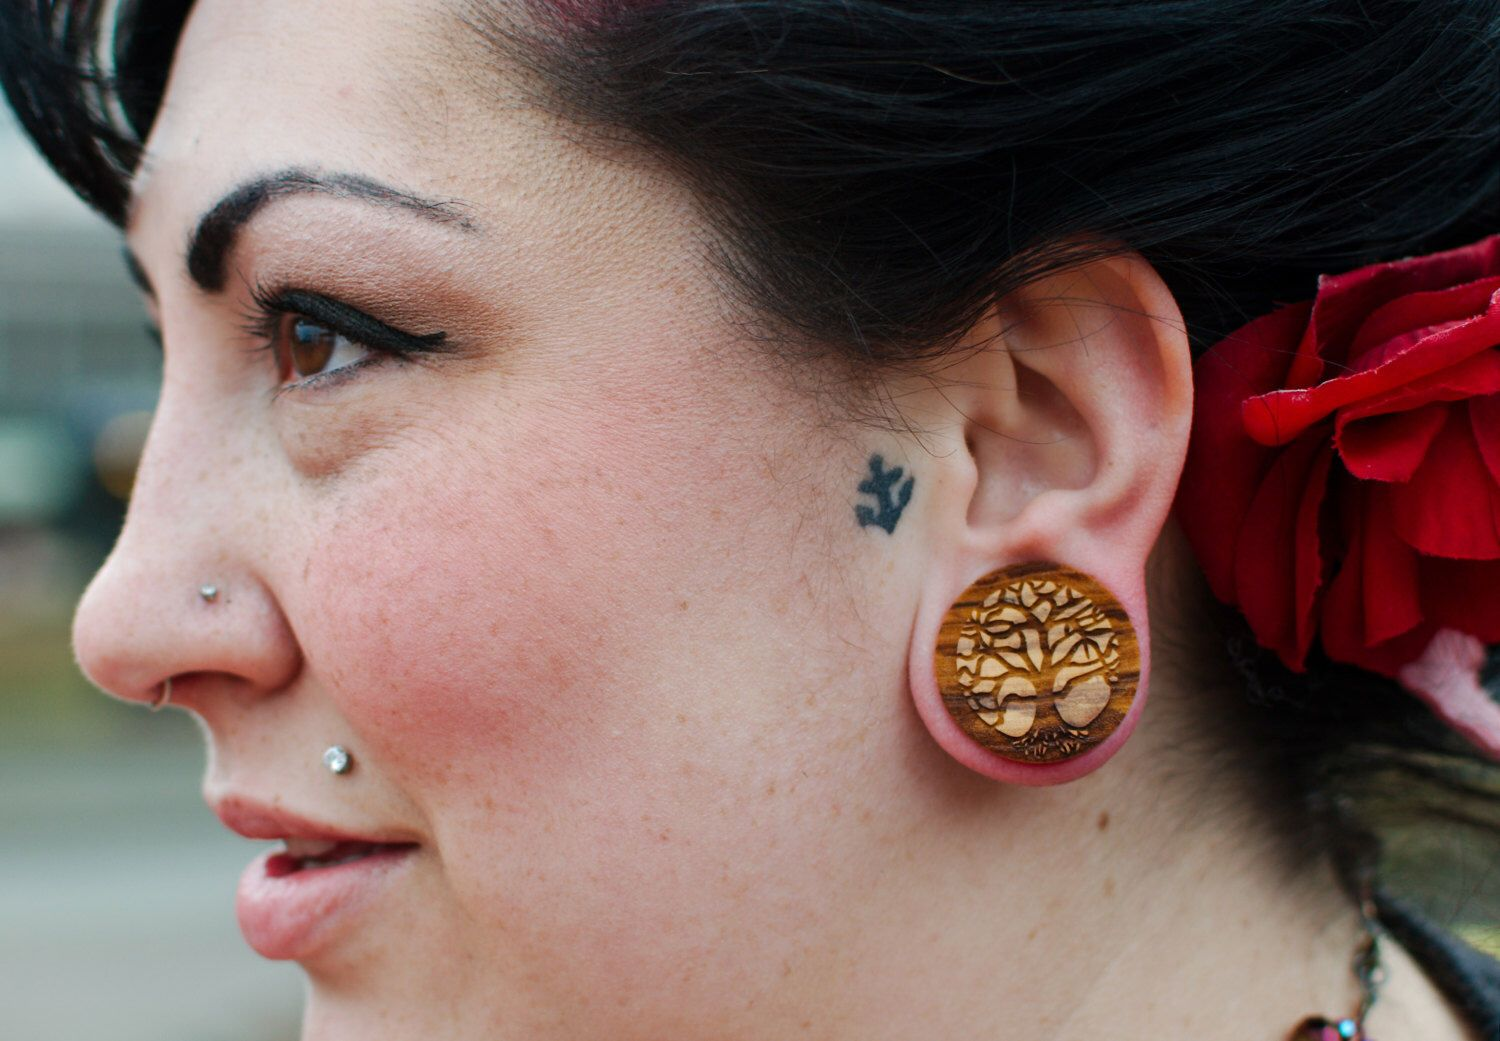 """Tree of Life Olivewood Wooden Plugs PAIR 1/2"""" (13mm) Wood Ear Gauges by EarEmporium on Etsy https://www.etsy.com/listing/124177849/tree-of-life-olivewood-wooden-plugs-pair"""